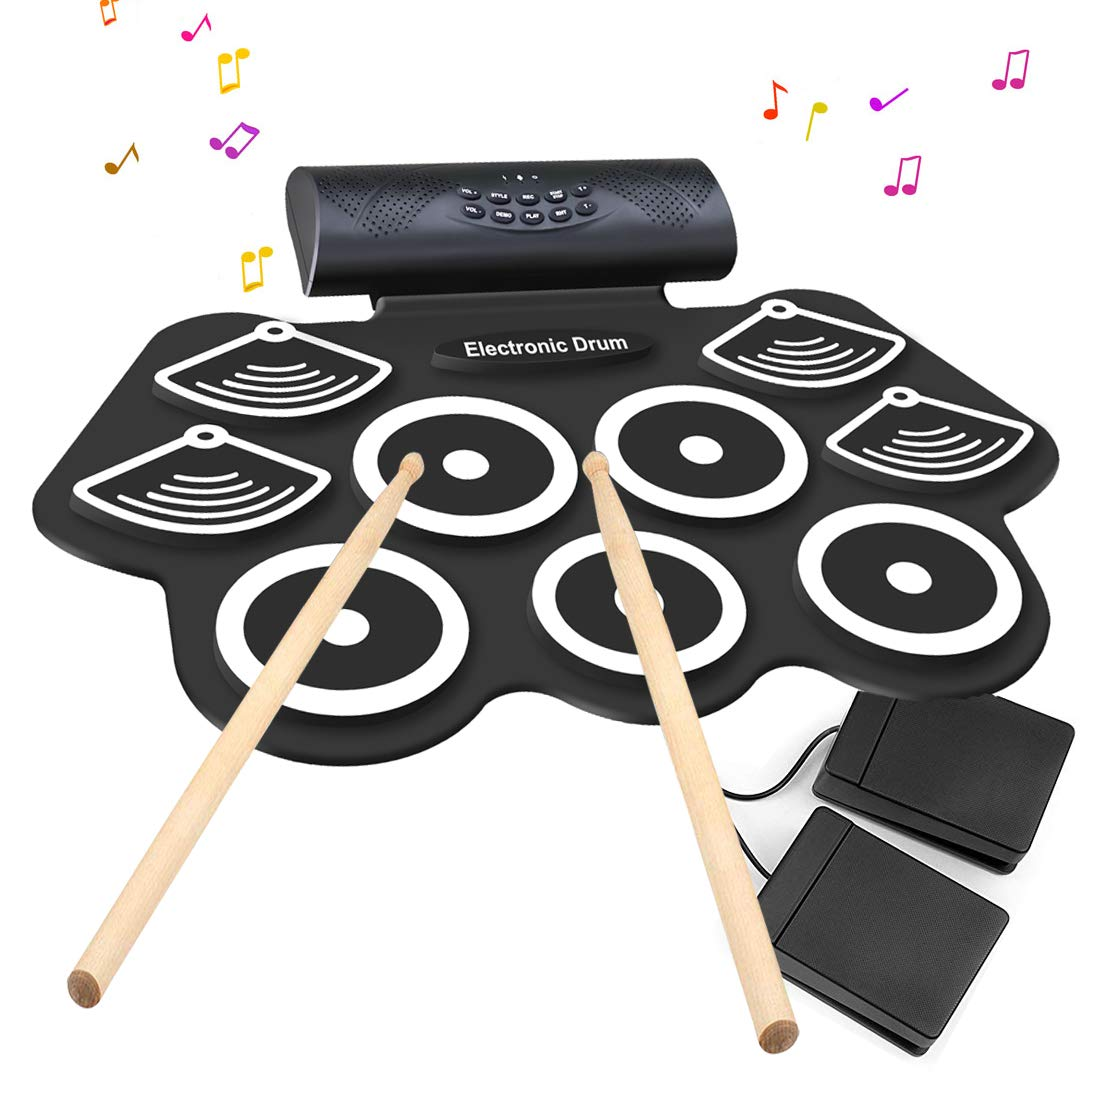 Electronic Drum Set - 9 MIDI Drum Practice Pads, Bluetooth Portable Roll Up Electric Drum kit with Headphone Jack, Built in Speaker and Battery, Drum Stick, Foot Pedals for Kids or Beginner by KONIX